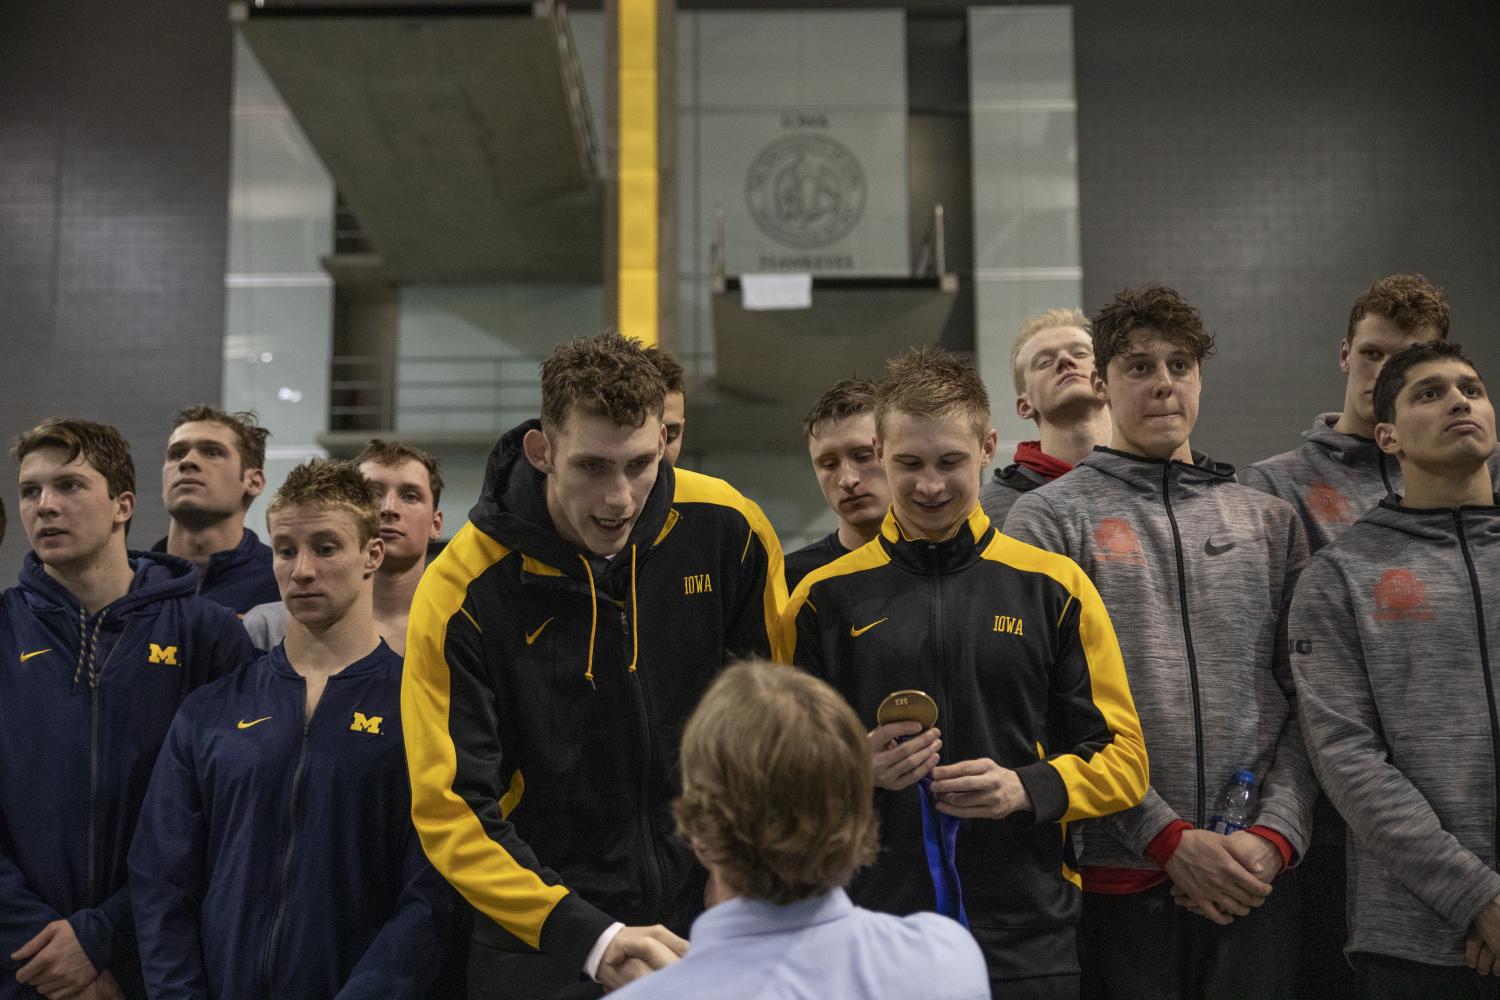 The+University+of+Iowa+mens+400+meter+relay+team+are+awarded+bronze+during+an+awards+ceremony+at+the+finals+of+the+Big+10+Swimming+Championships+on+Saturday%2C+March+2%2C+2019.+Iowa+men%27s+400+meter+relay+team+was+awarded+bronze.+The+men%27s+swimming+team+placed+7th+overall.+